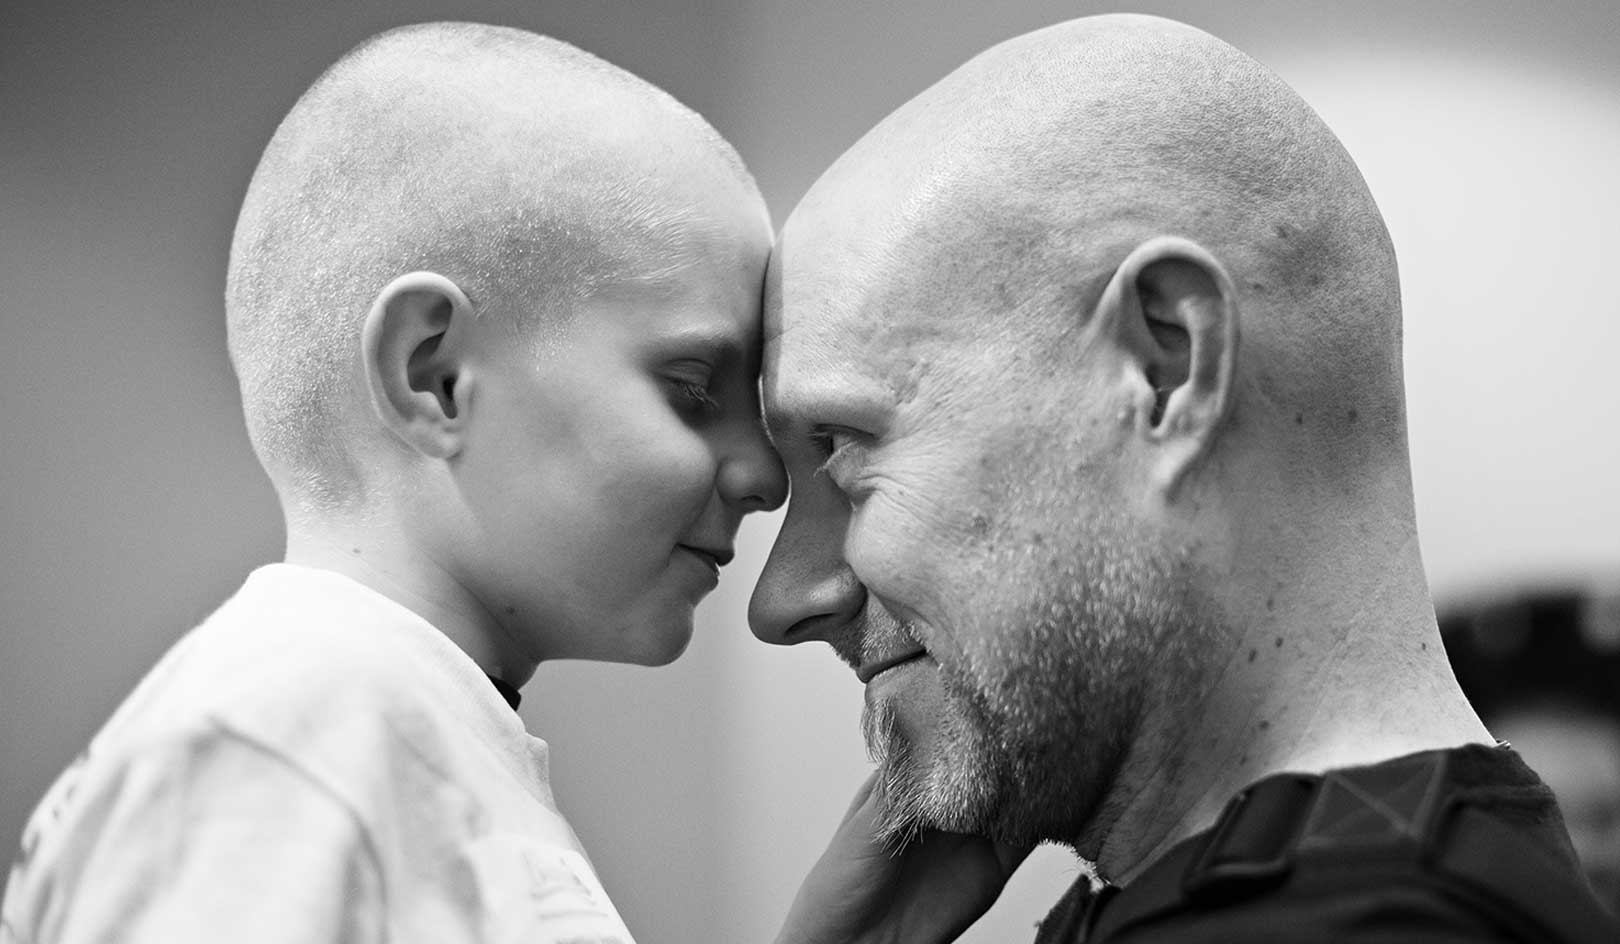 Matthias, who had retinoblastoma, hugs his father after they shaved for St. Baldrick's.